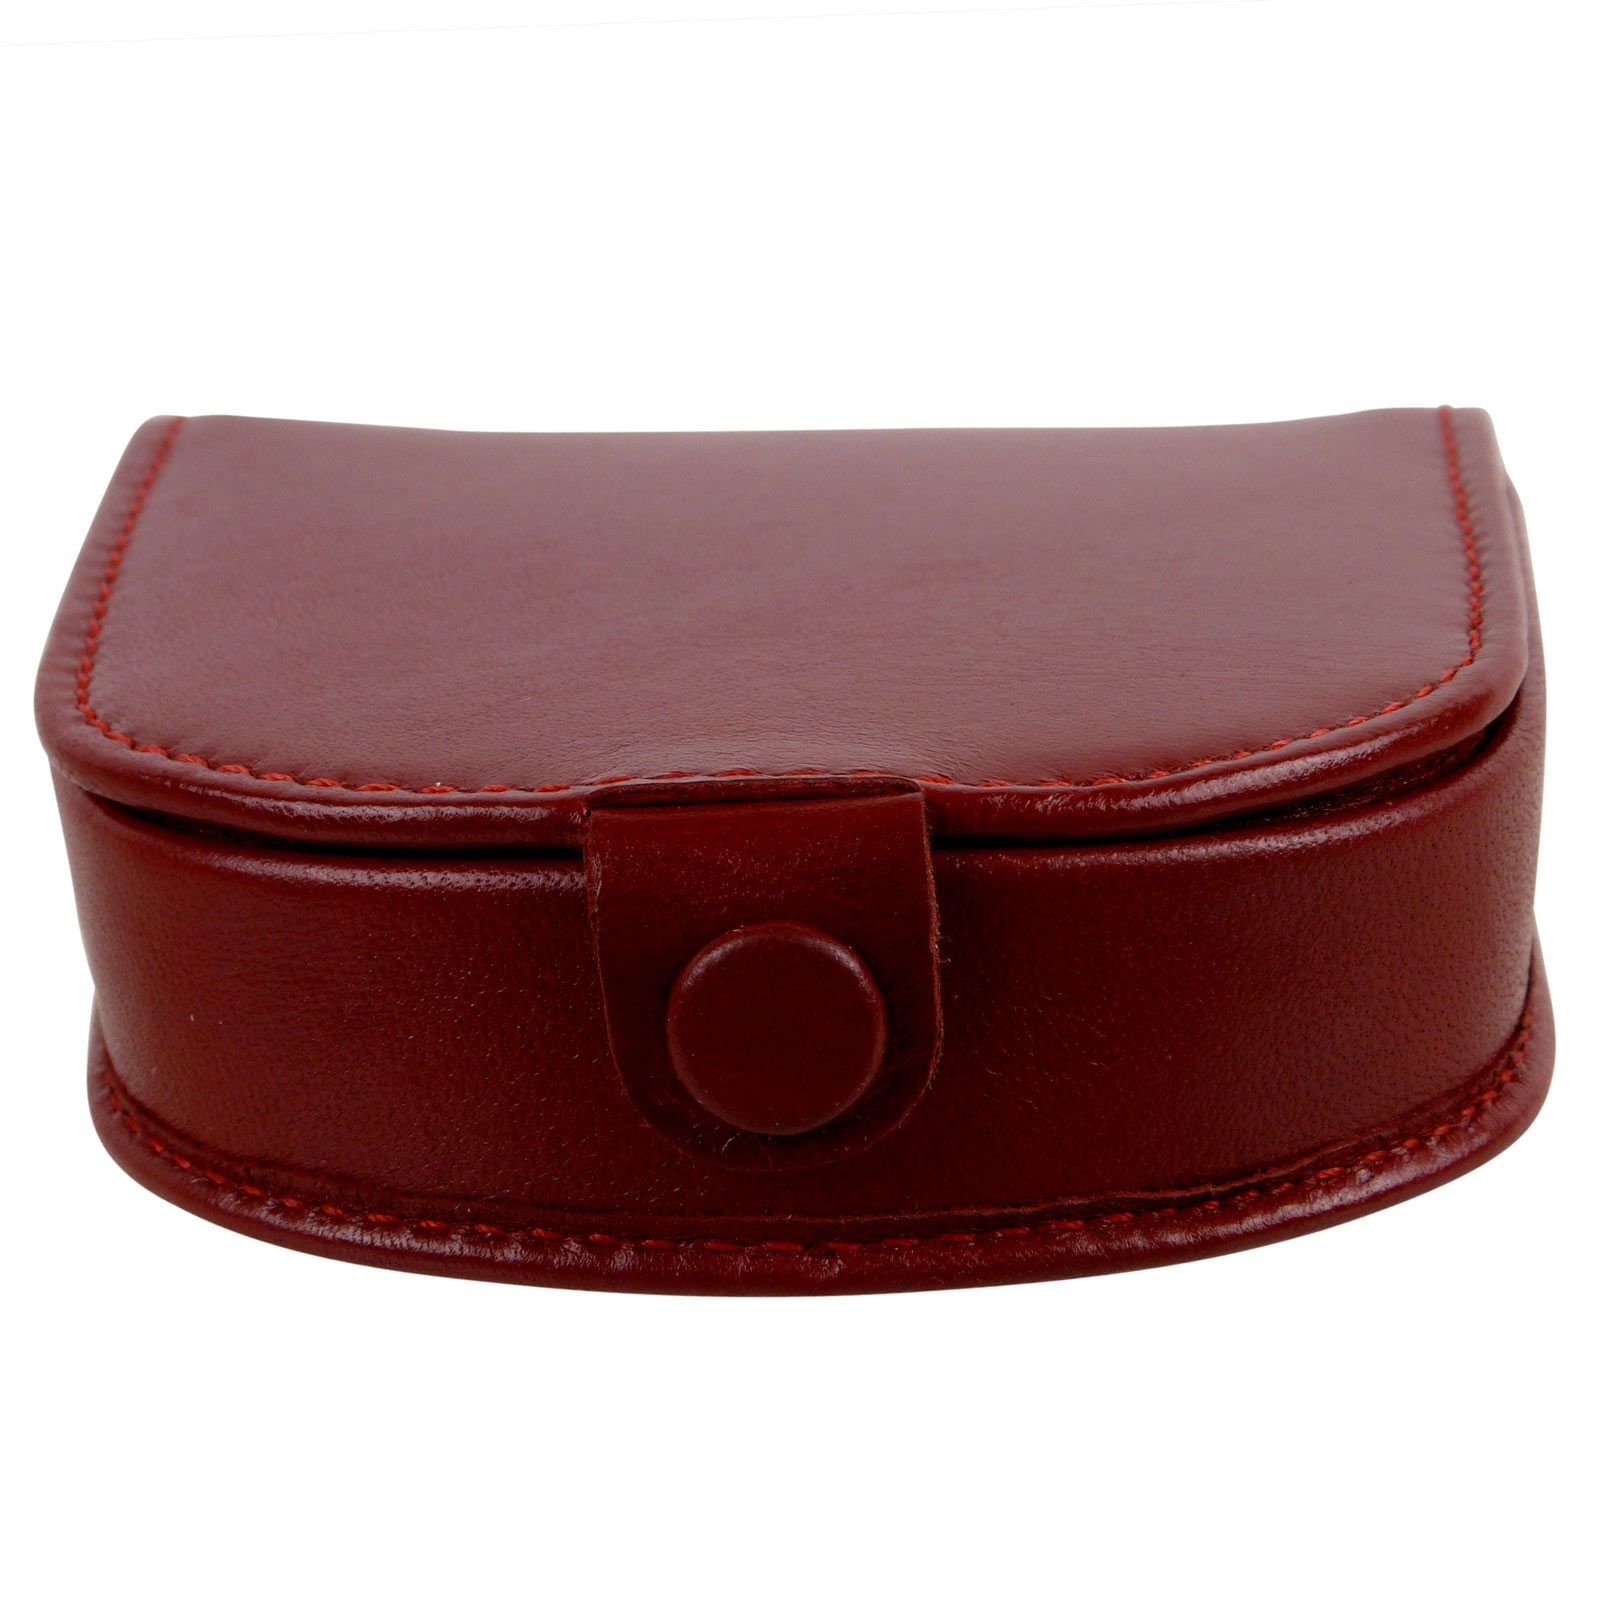 thumbnail 4 - Mens-Classic-Leather-Tabbed-Coin-Tray-by-Visconti-Monza-Collection-Gift-Boxed